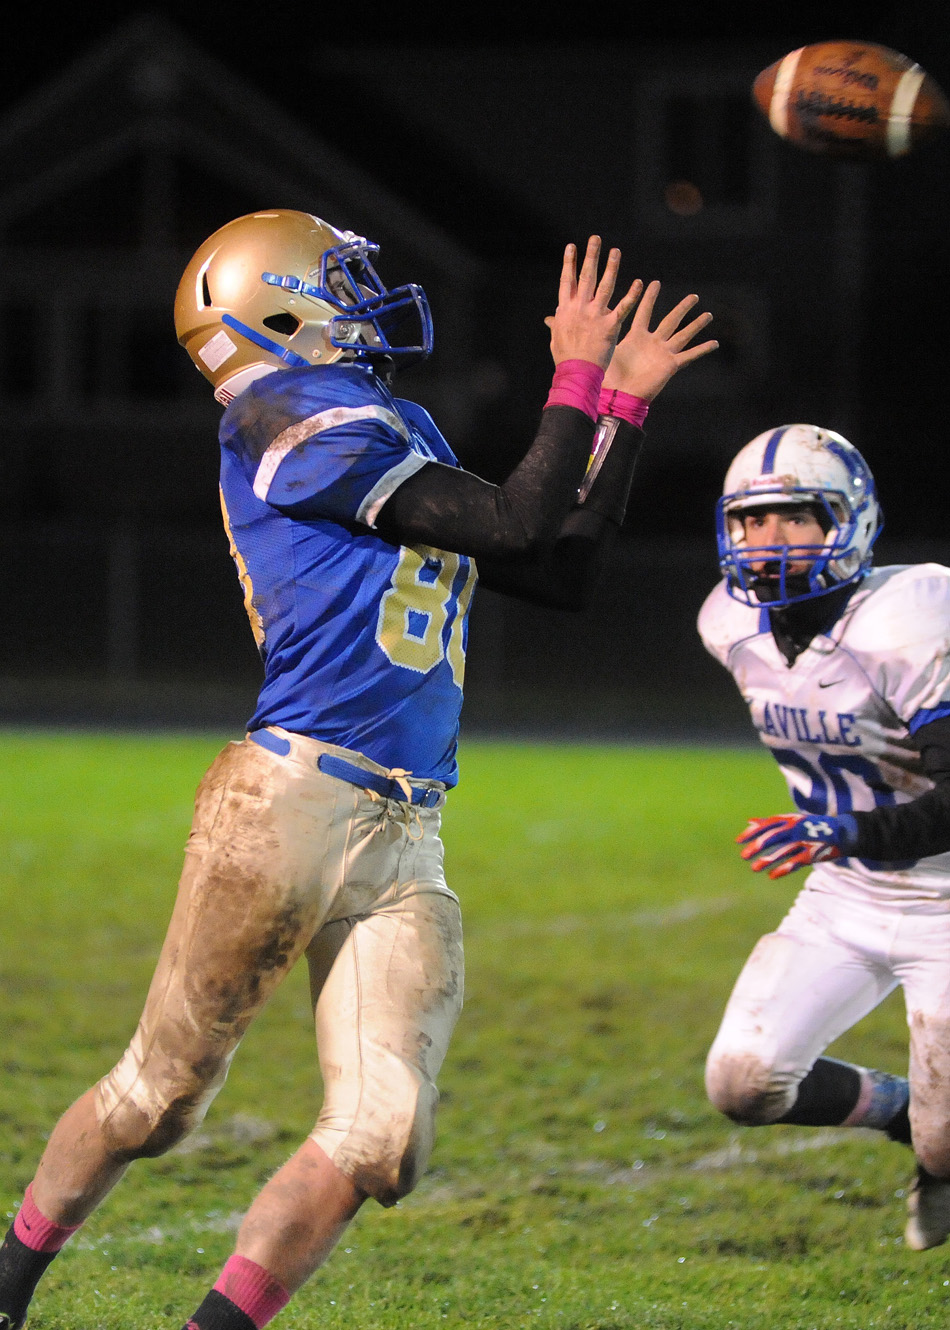 Triton wide receiver Tristan Hunsberger hauls in a catch, one of just four completions by either team all night.